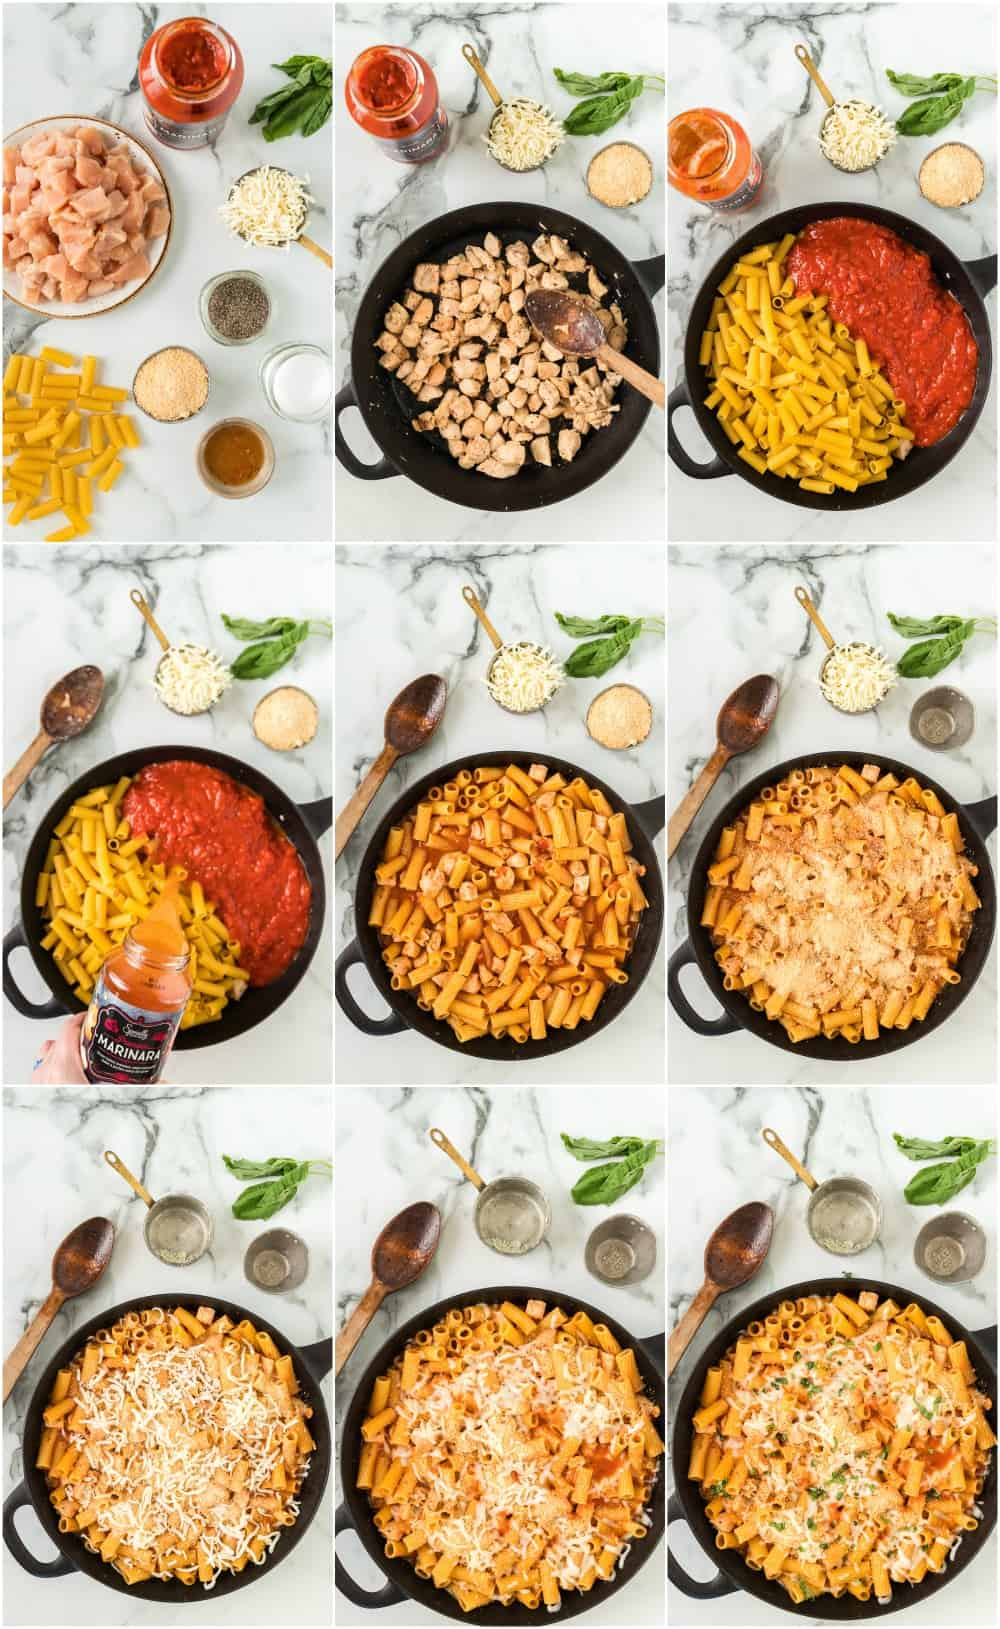 how to make chicken parmesan pasta step by step photos process shots